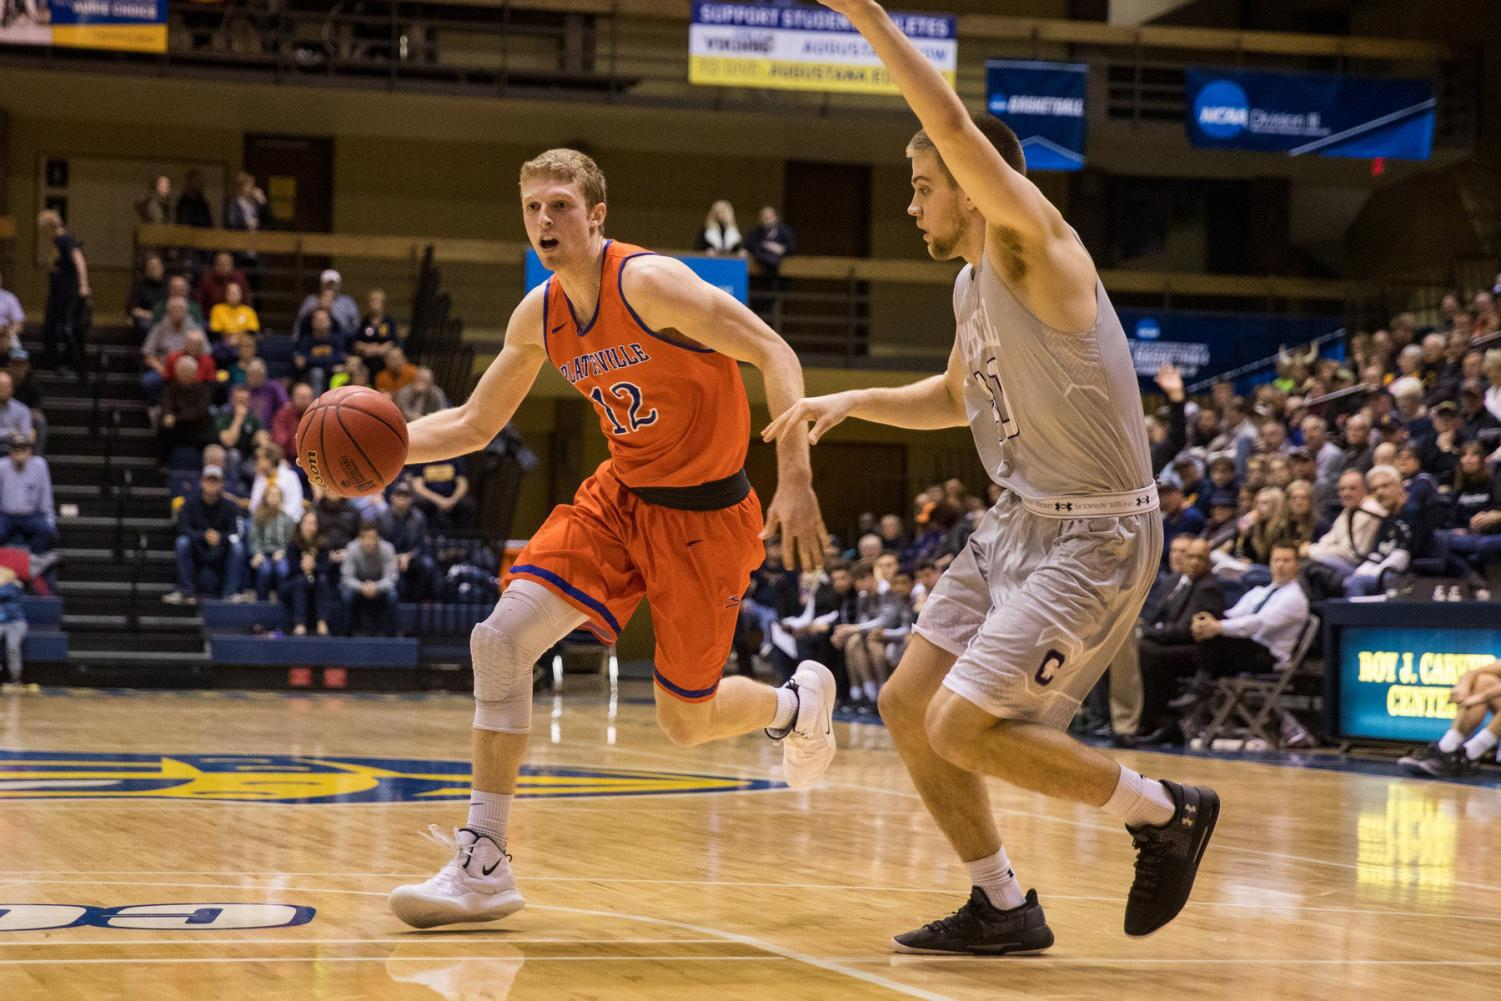 UW-Platteville Communications photo Pioneers' #12 Robert Duax driving into the paint during Friday night's game.